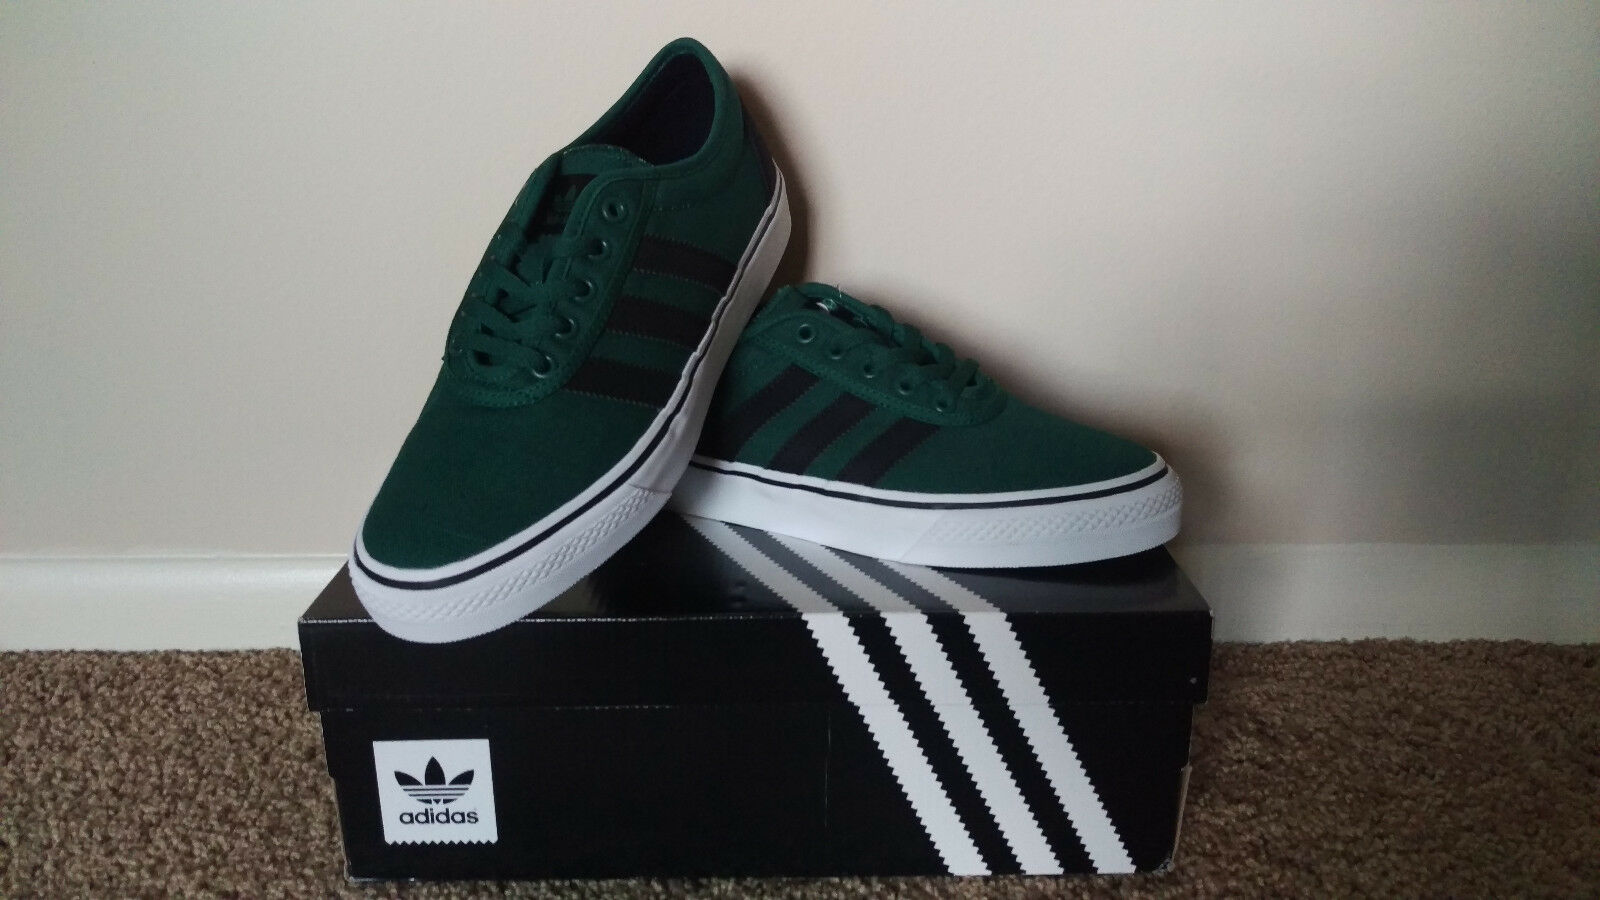 Adidas Adi-Ease Men's Shoes. Size 7. Dark green & black. New in box, never worn.